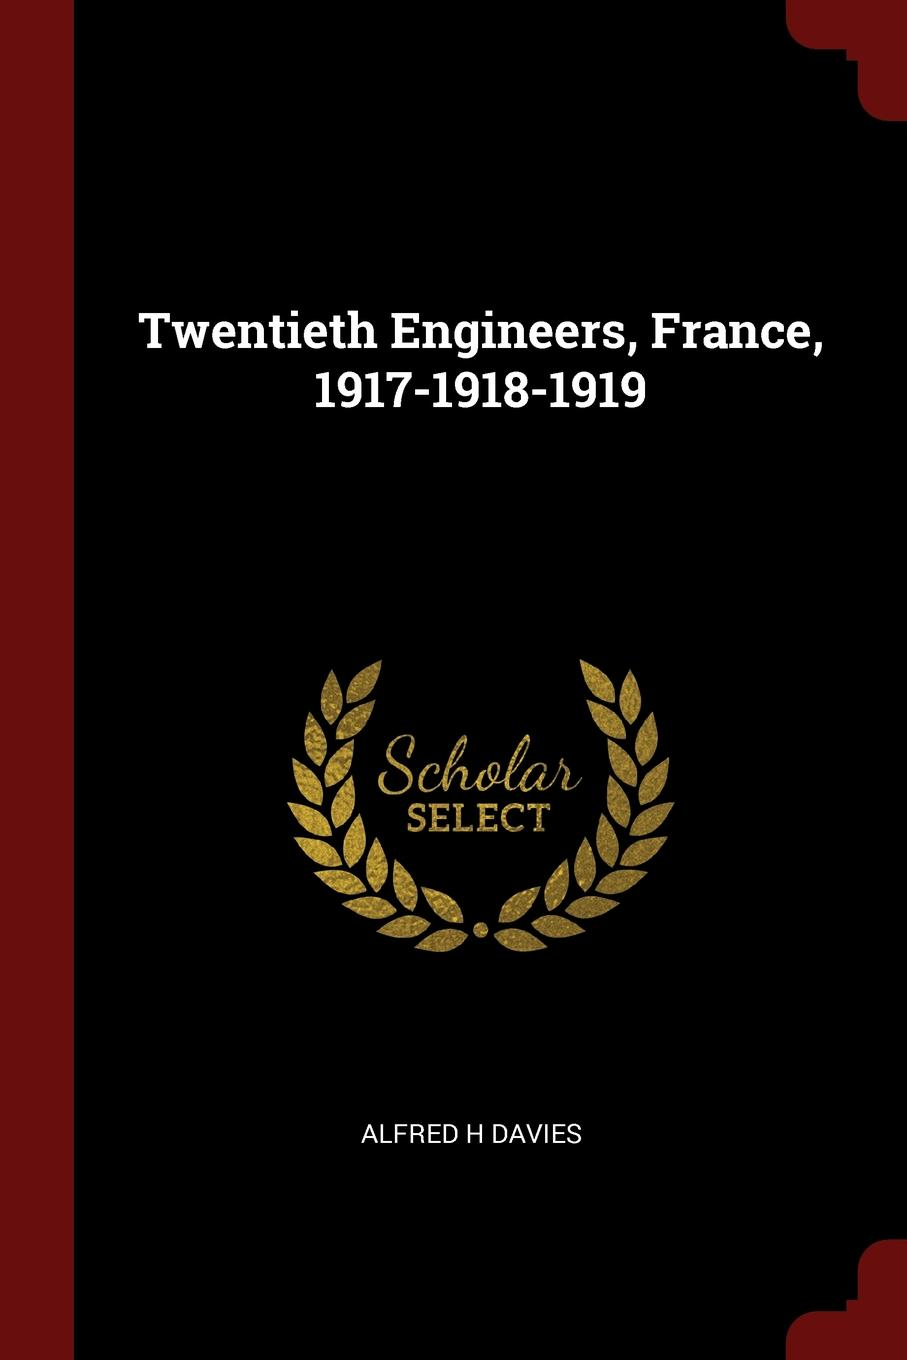 Alfred H Davies Twentieth Engineers, France, 1917-1918-1919